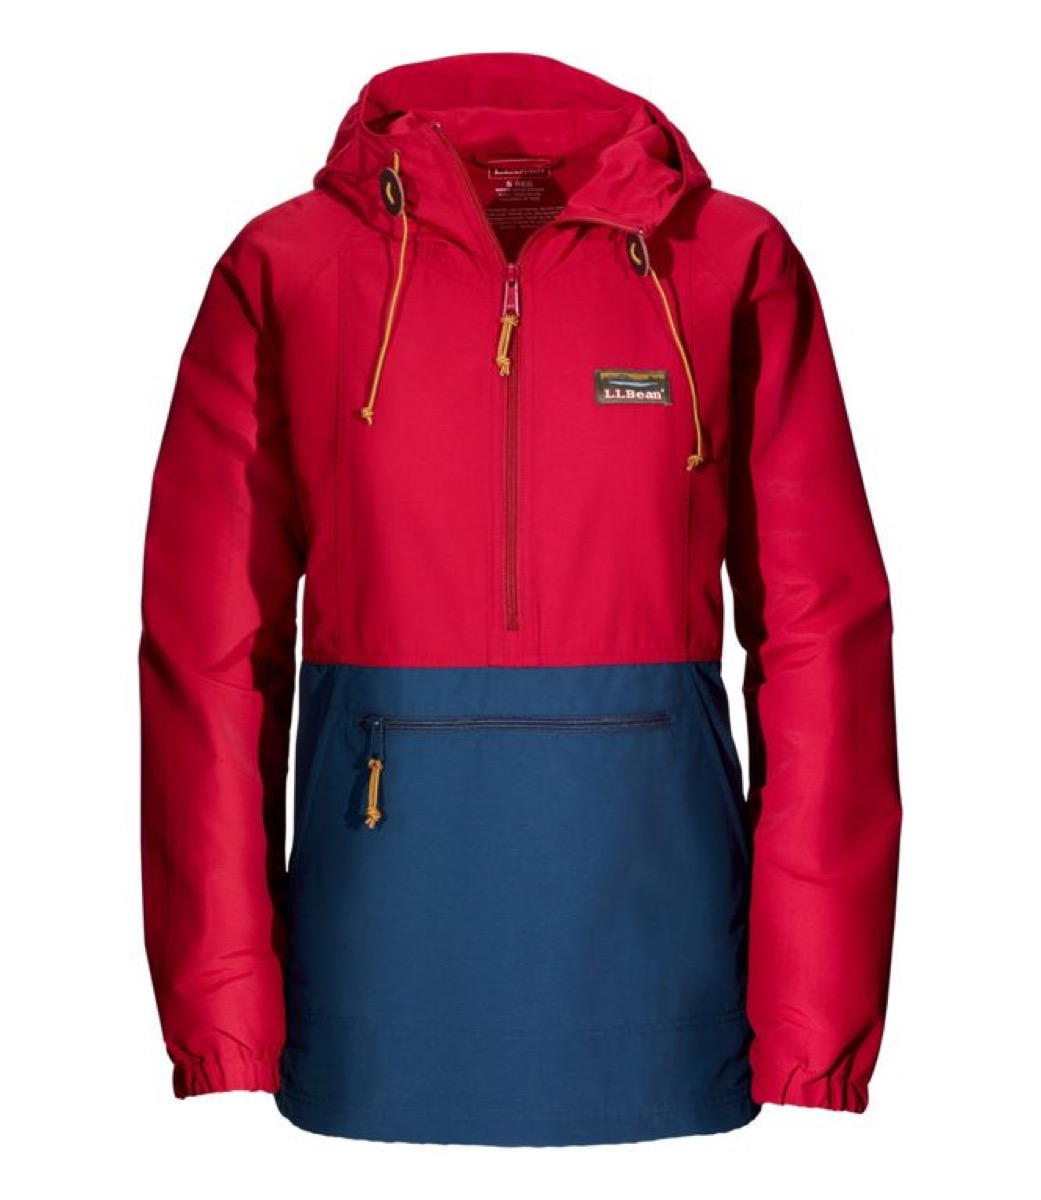 red and blue women's anorak